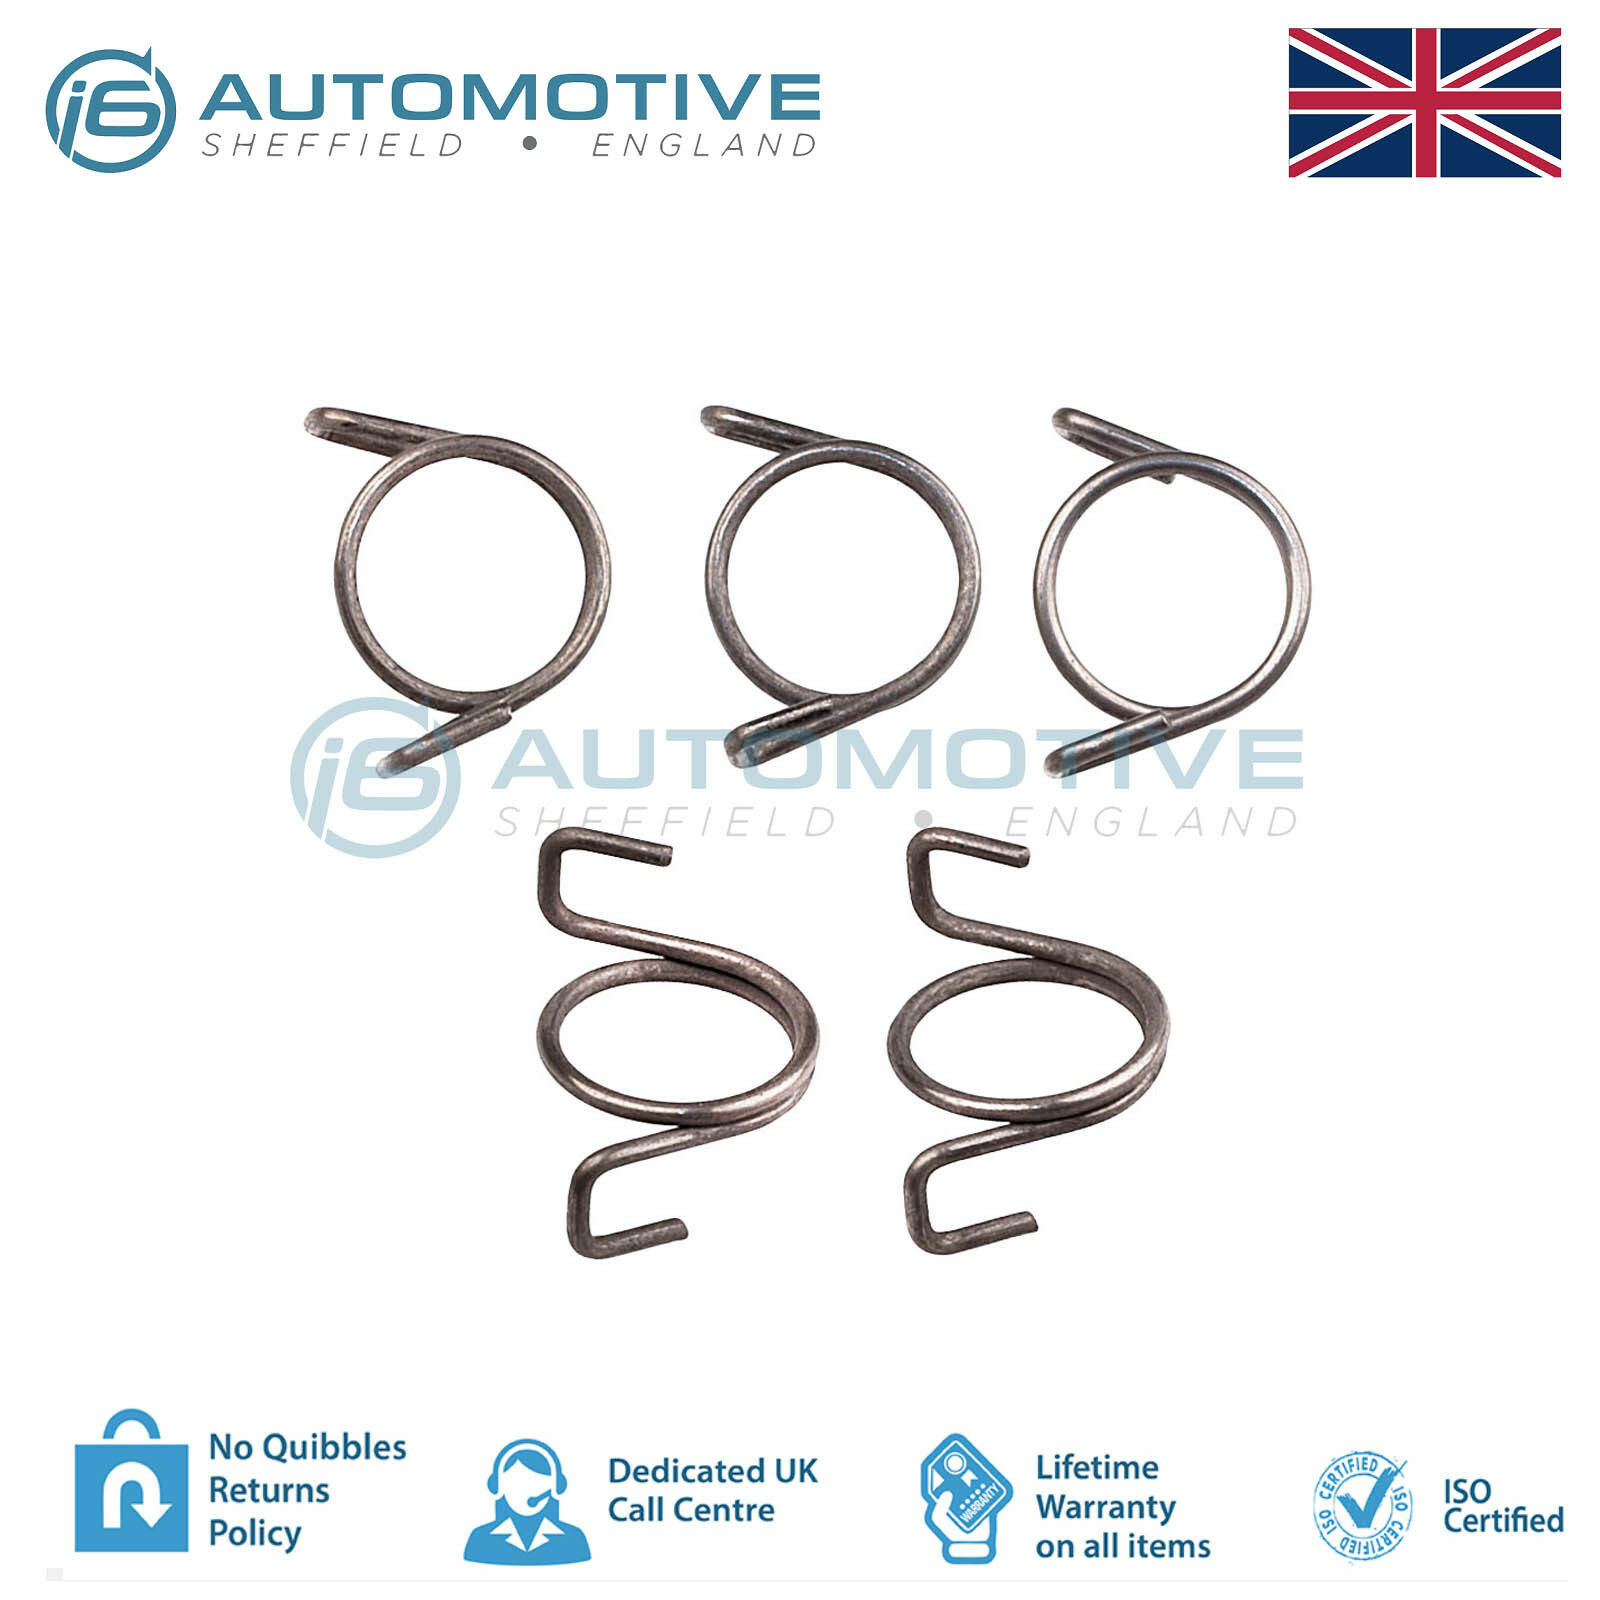 RANGE ROVER DOOR LOCK REPAIR SPRINGS LANDROVER DISCOVERY 5 DOOR SET